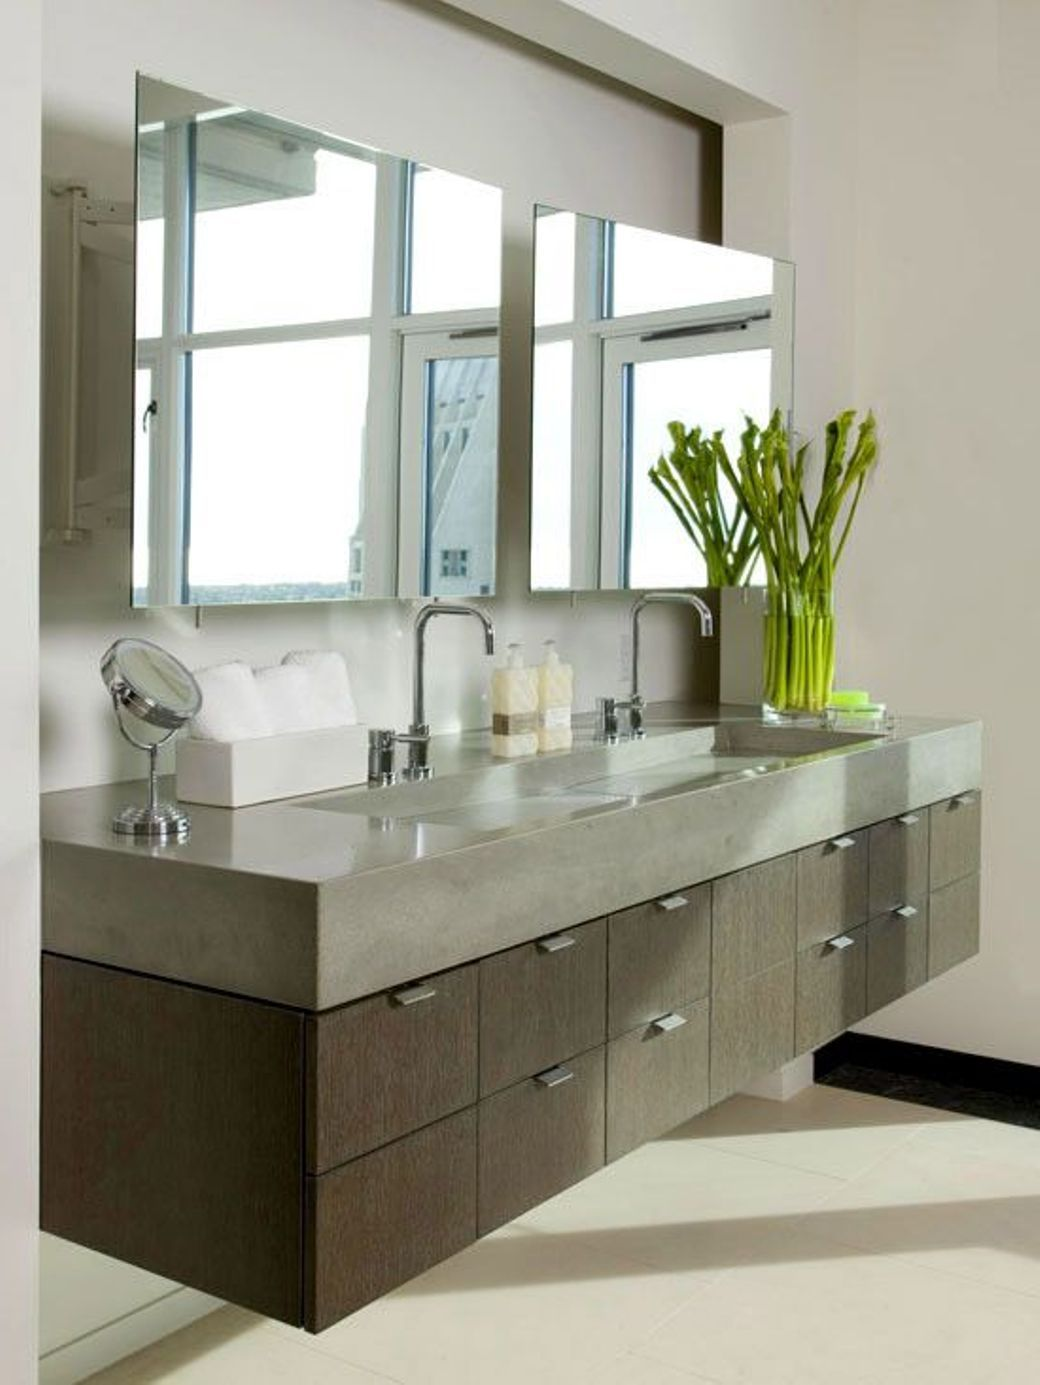 Bathroom The Modern Vanity Floating With Poured Concrete Countertop And Integrated Trough Sink Doubl